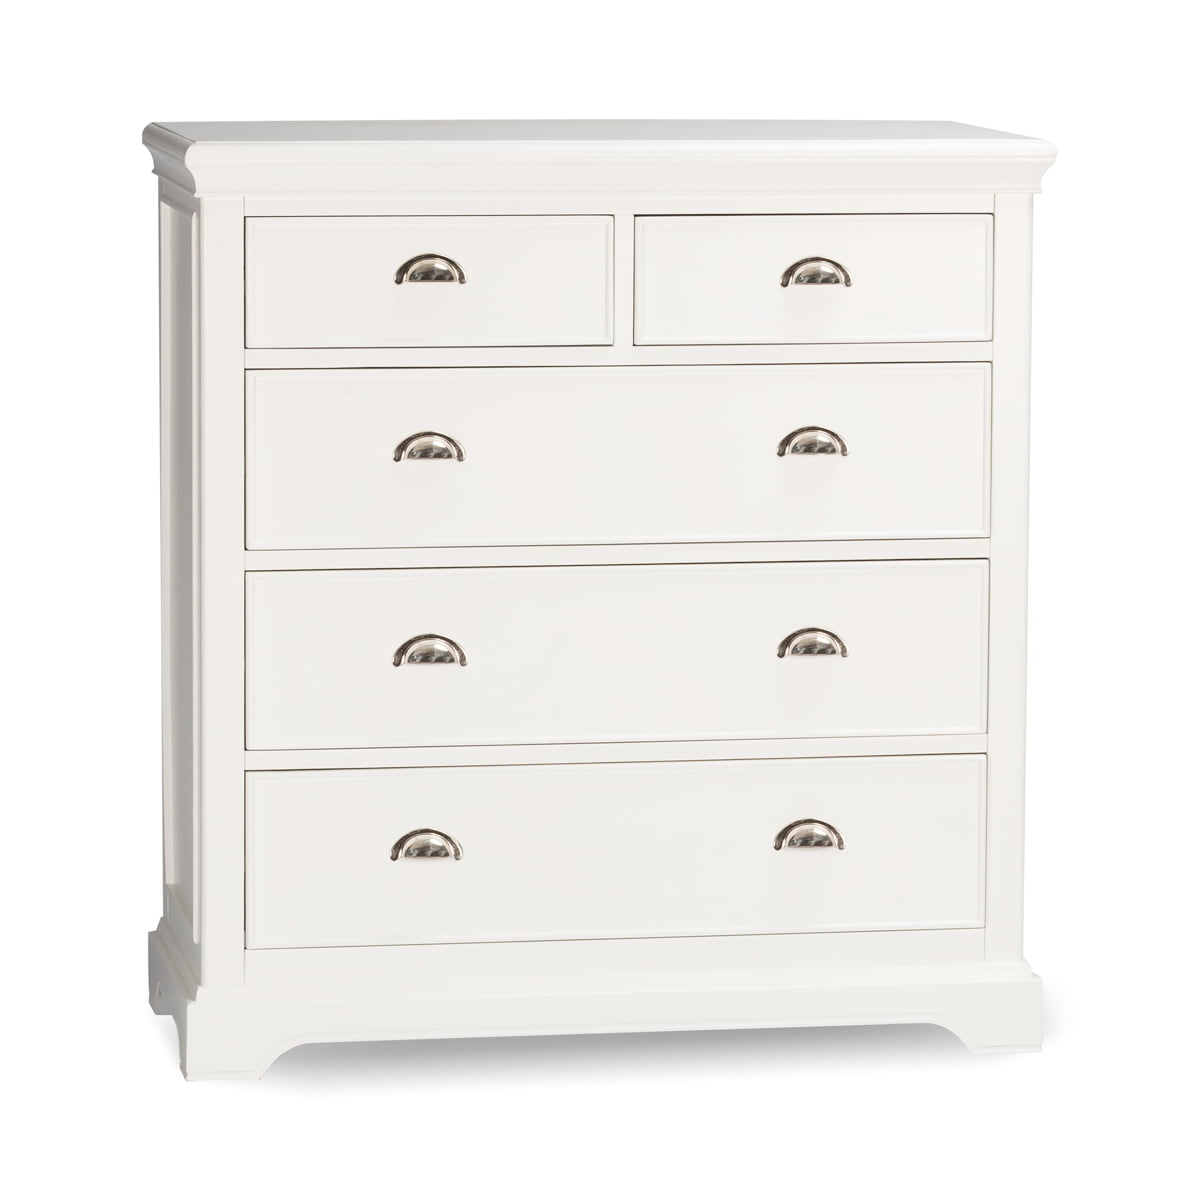 Clifford White Tall Chest of Drawers